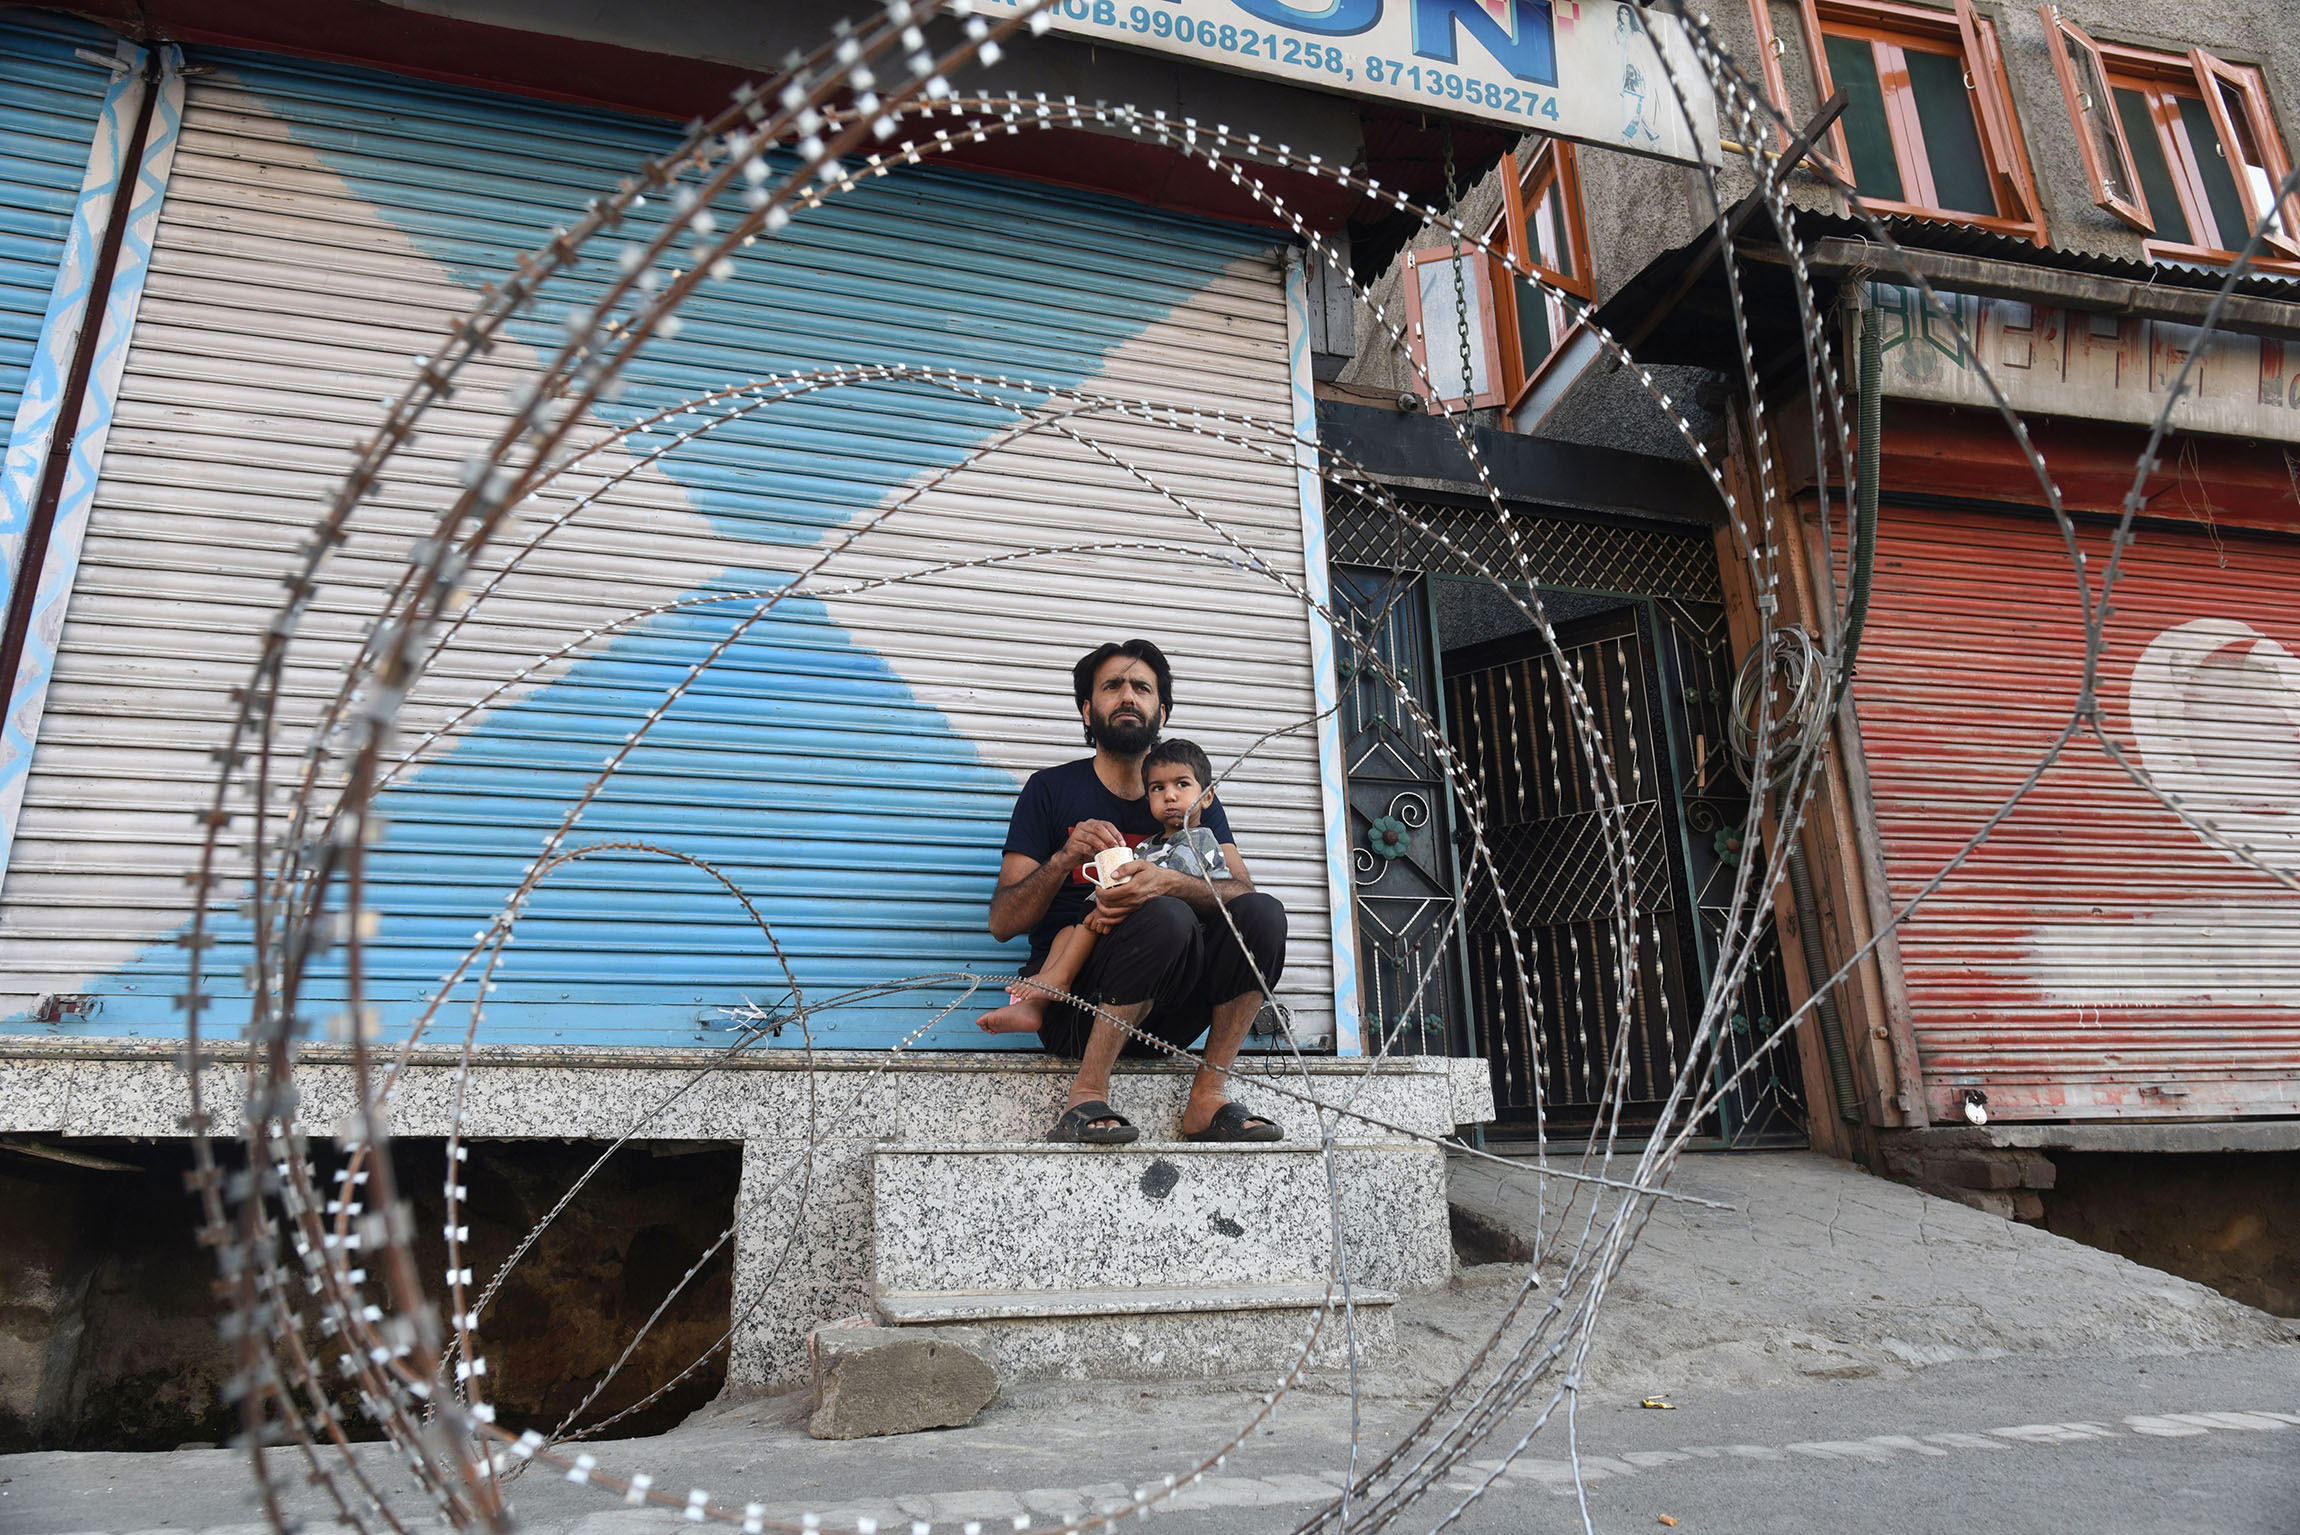 4 August 2020: A man feeds his child next to barbed wire installed to enforce a curfew in Srinagar, the largest city in Jammu and Kashmir. (Photograph by Waseem Andrabi/ Hindustan Times via Getty Images)